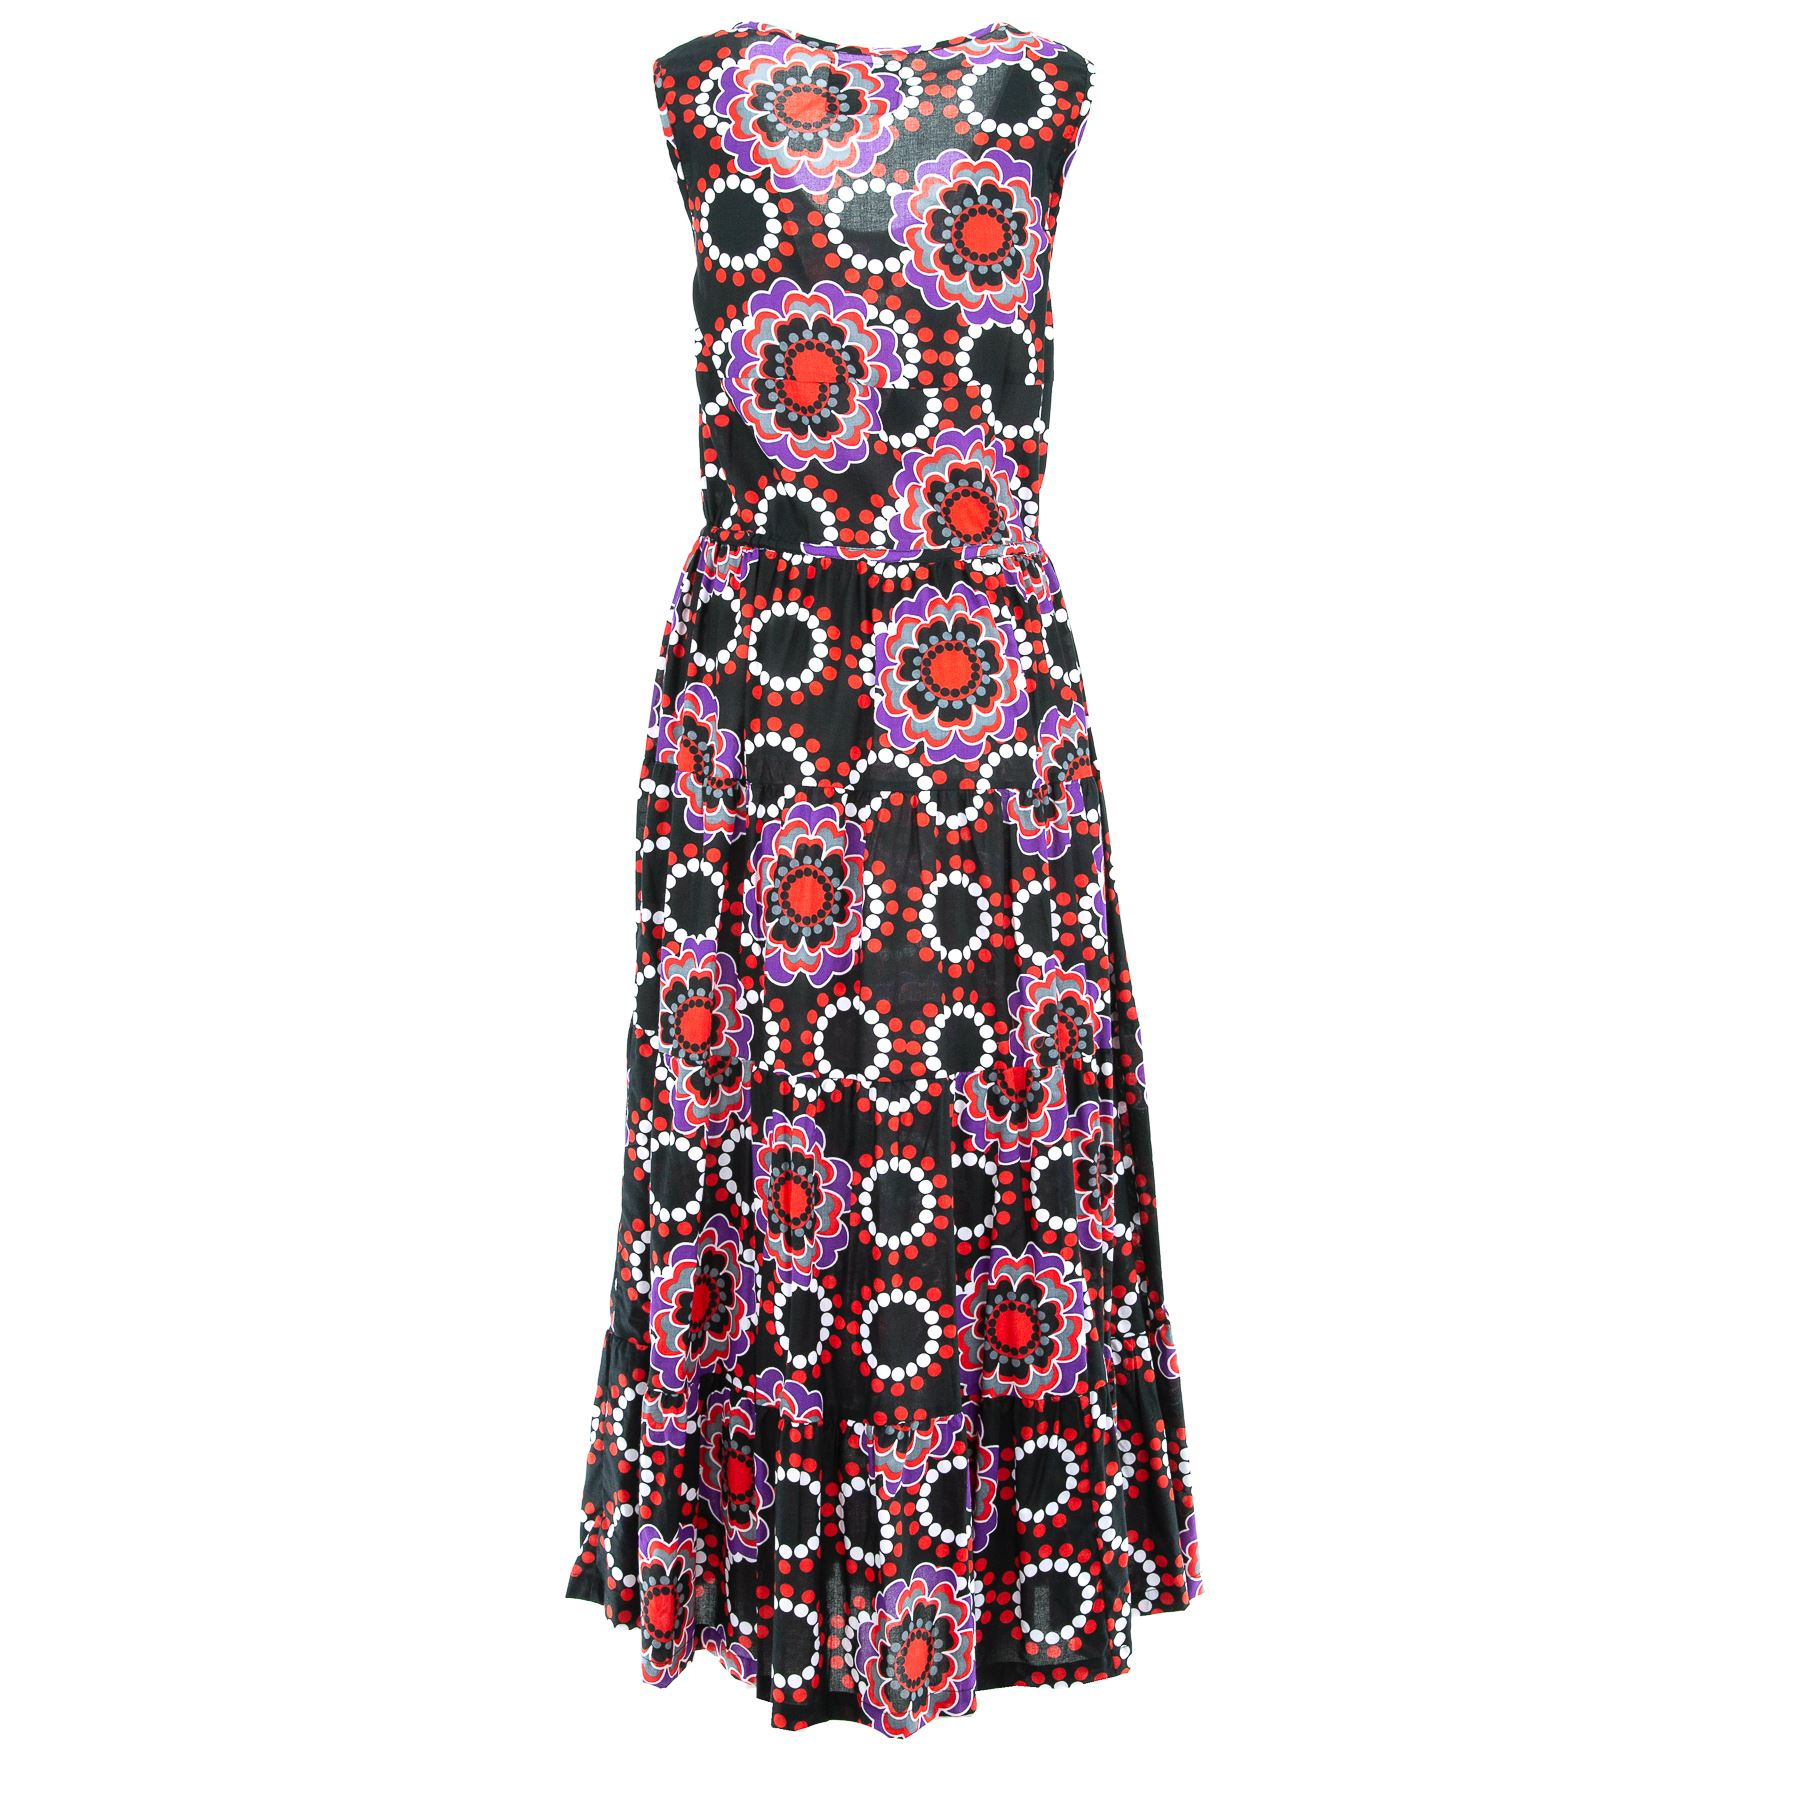 D917fe Good Selling Uk Occasion Wear Dresses Size 18 Maw Clan Co Uk